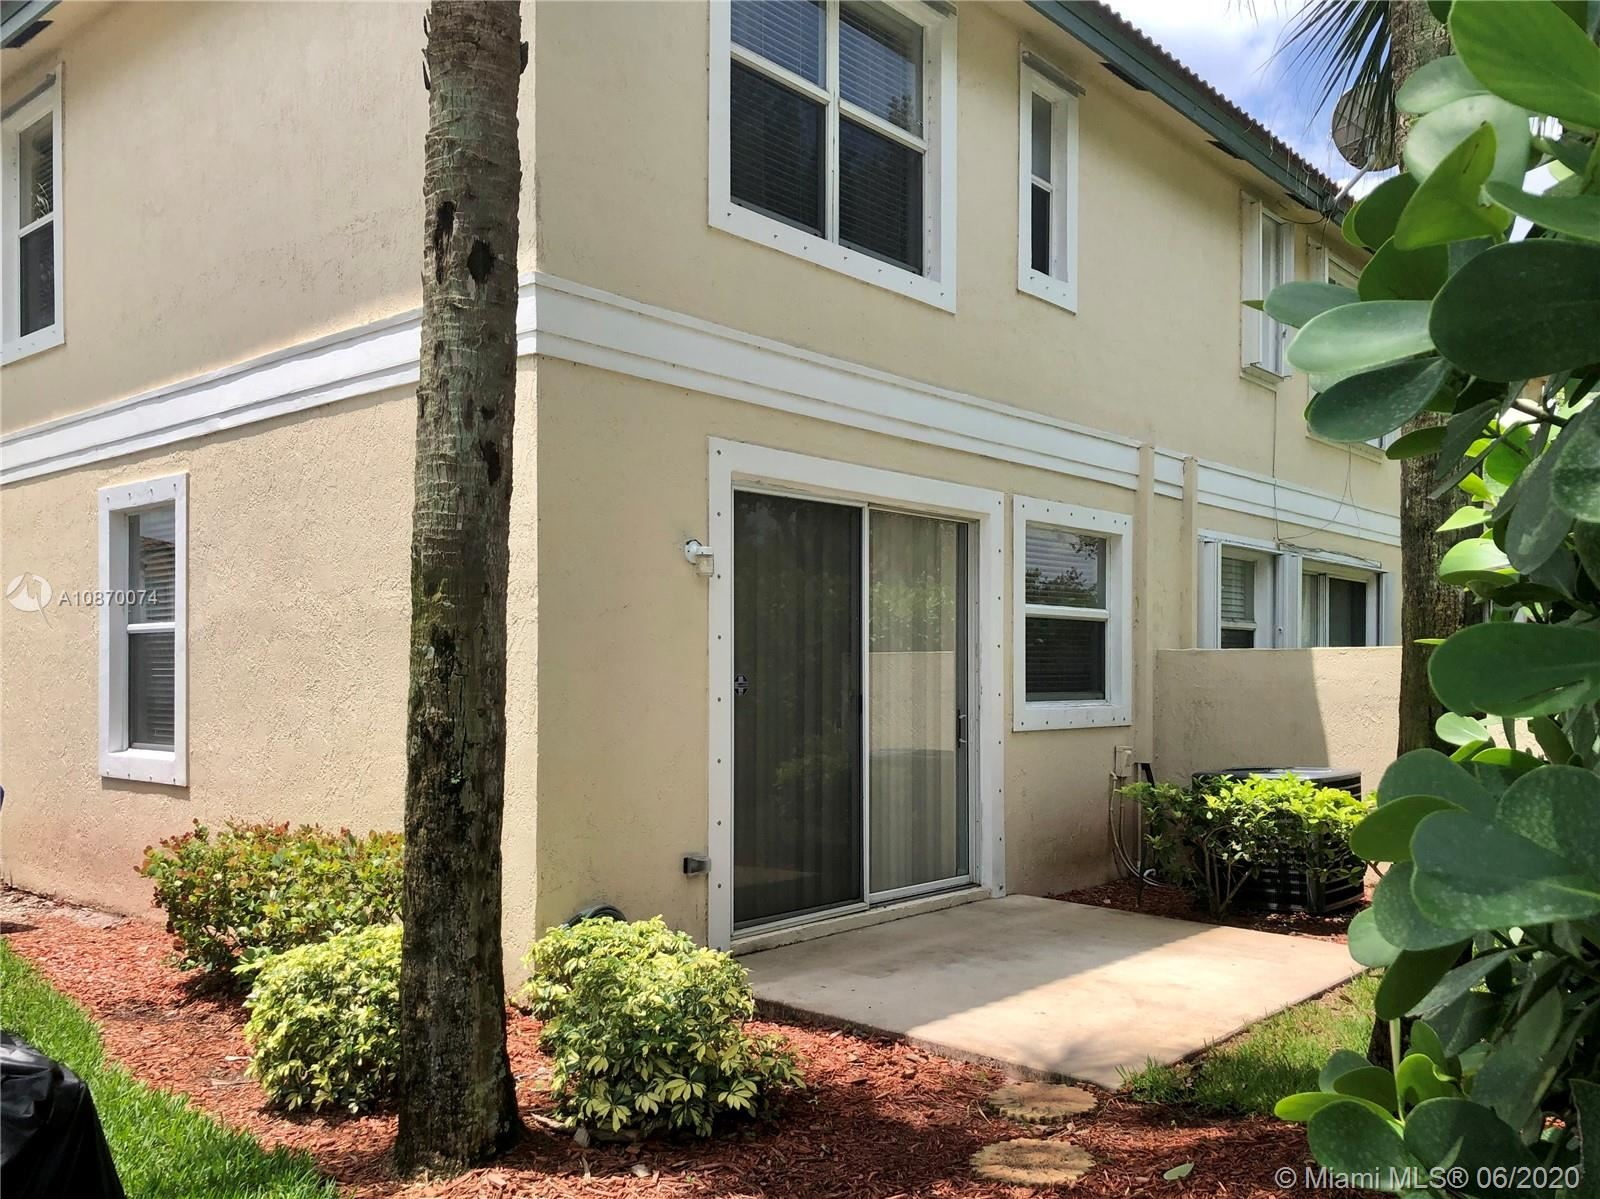 Photo of 11701 NW 47th Dr #1-1, Coral Springs, FL 33076 (MLS # A10870074)